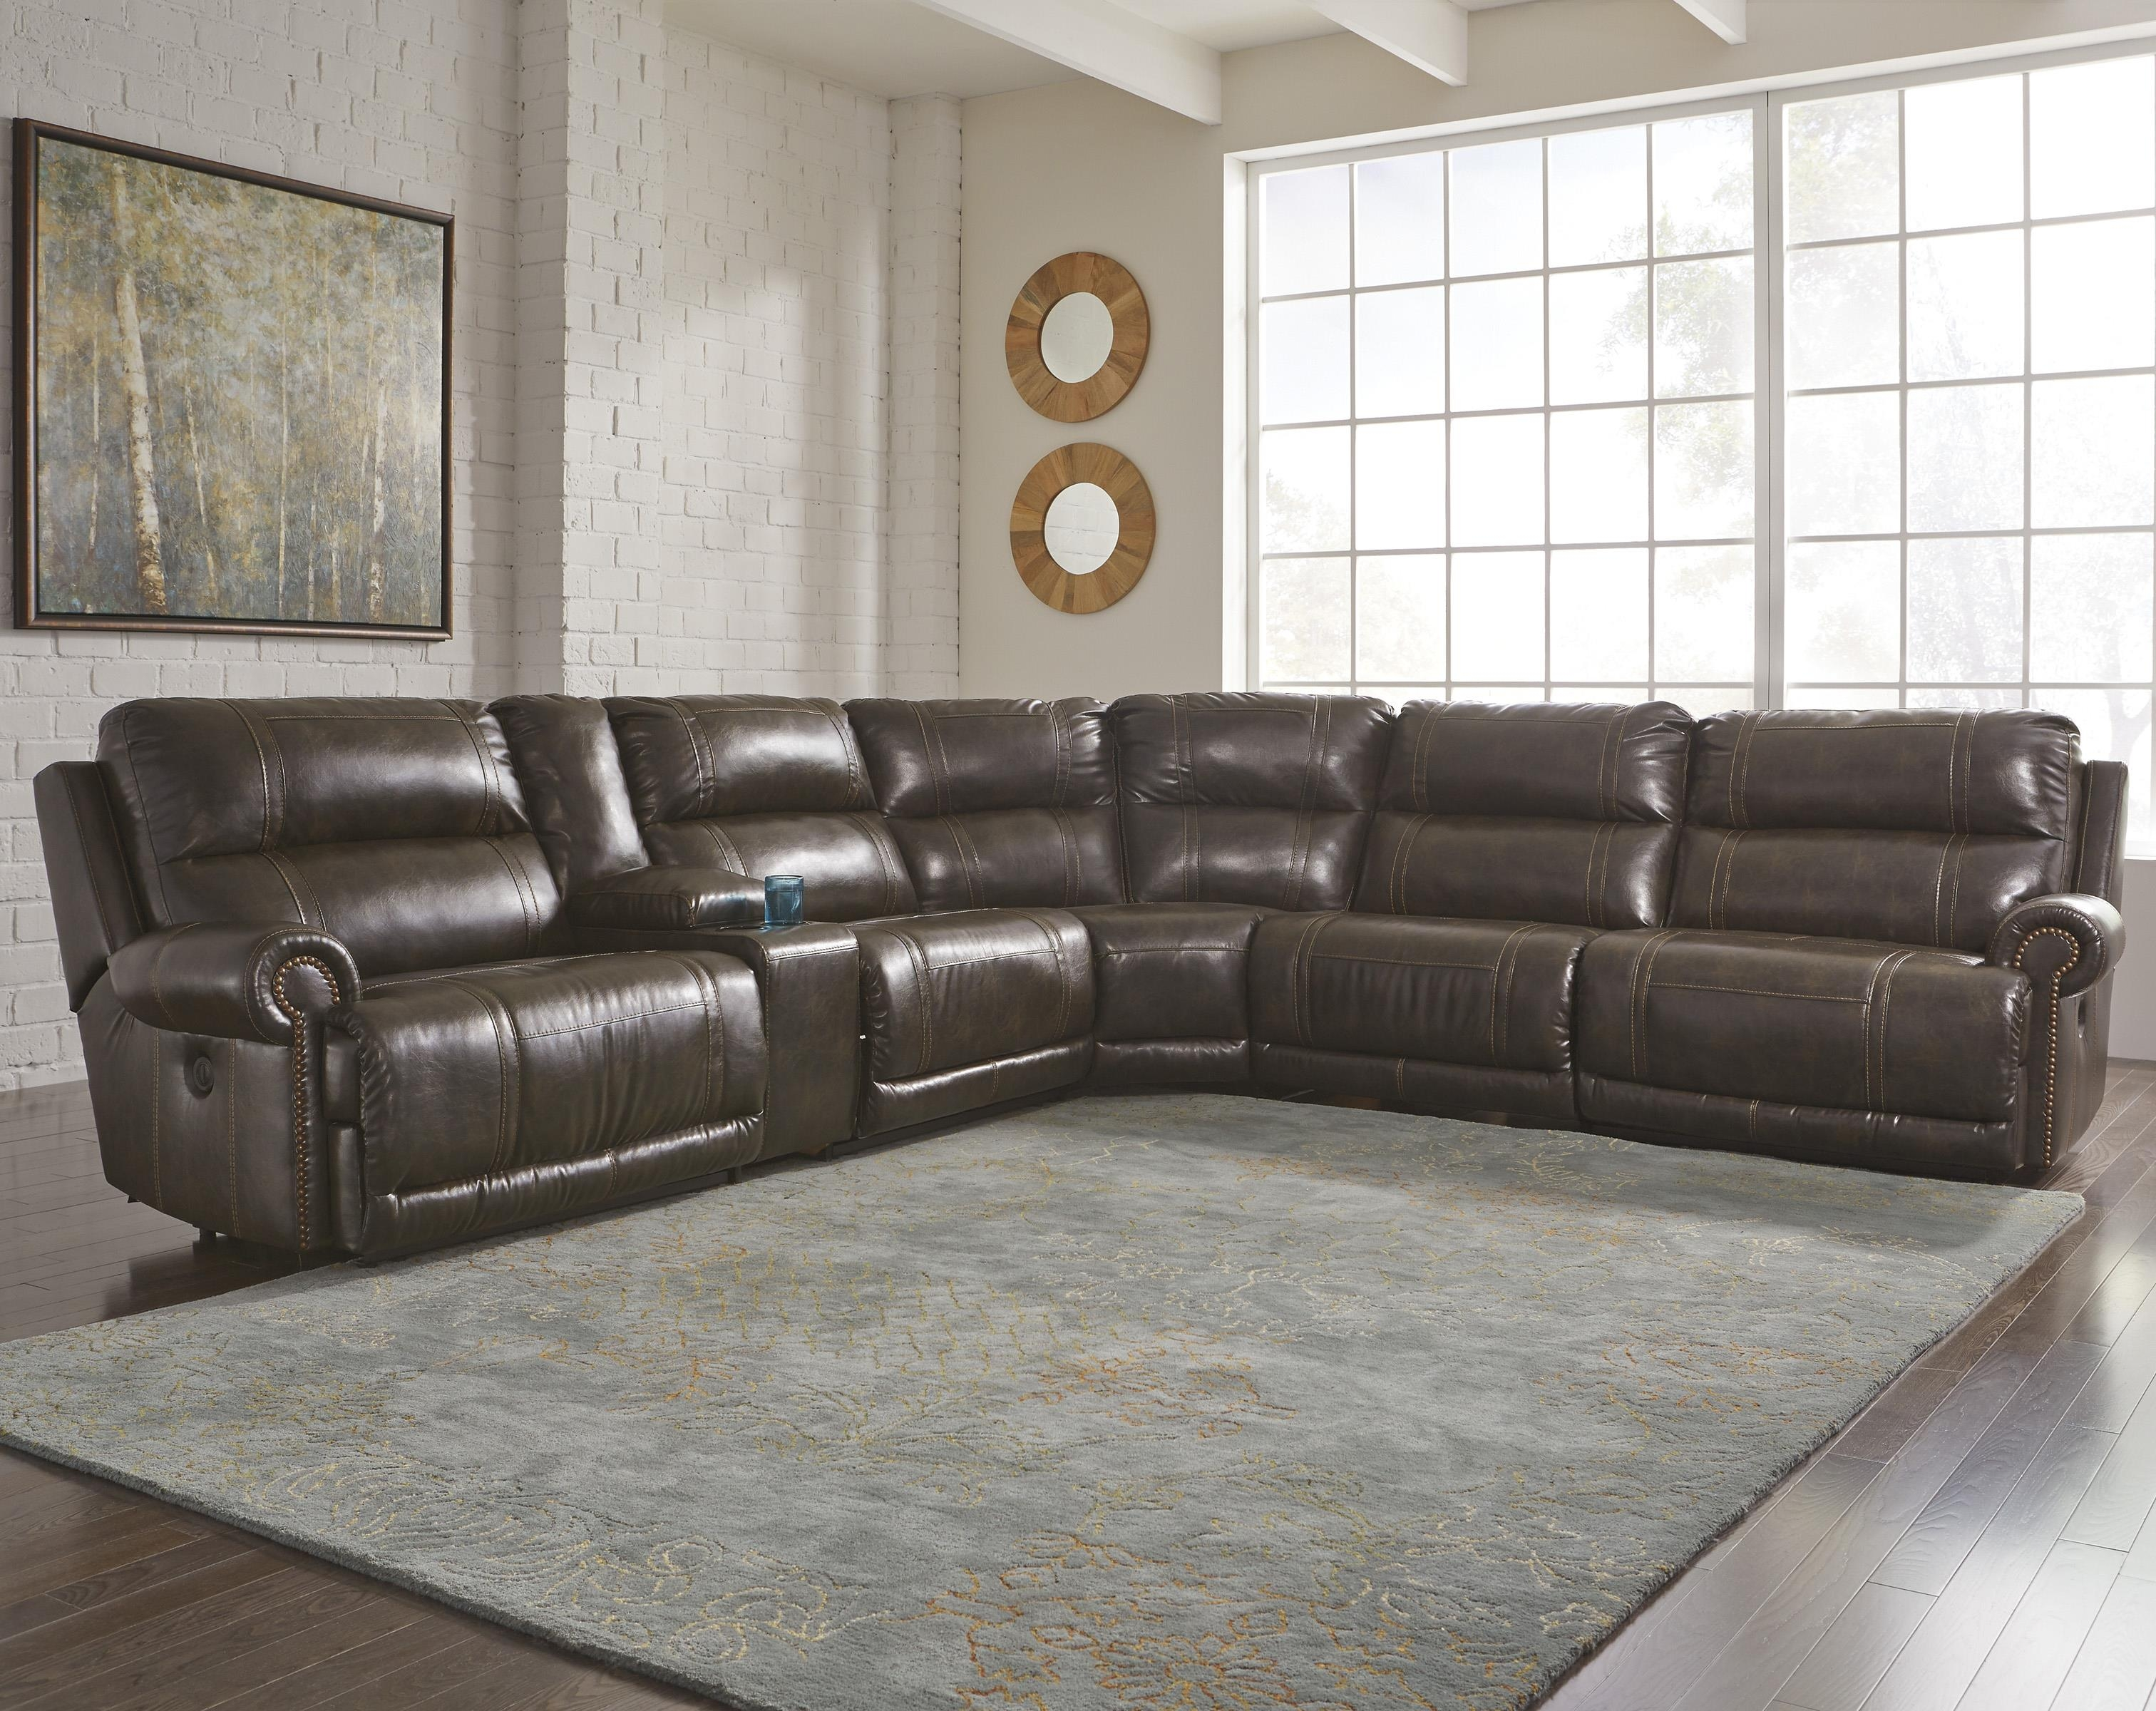 Sectional Sofa Emerald Sectional Sofa Costco Stunning 6 Piece Within 6 Piece Leather Sectional Sofa (#10 of 12)